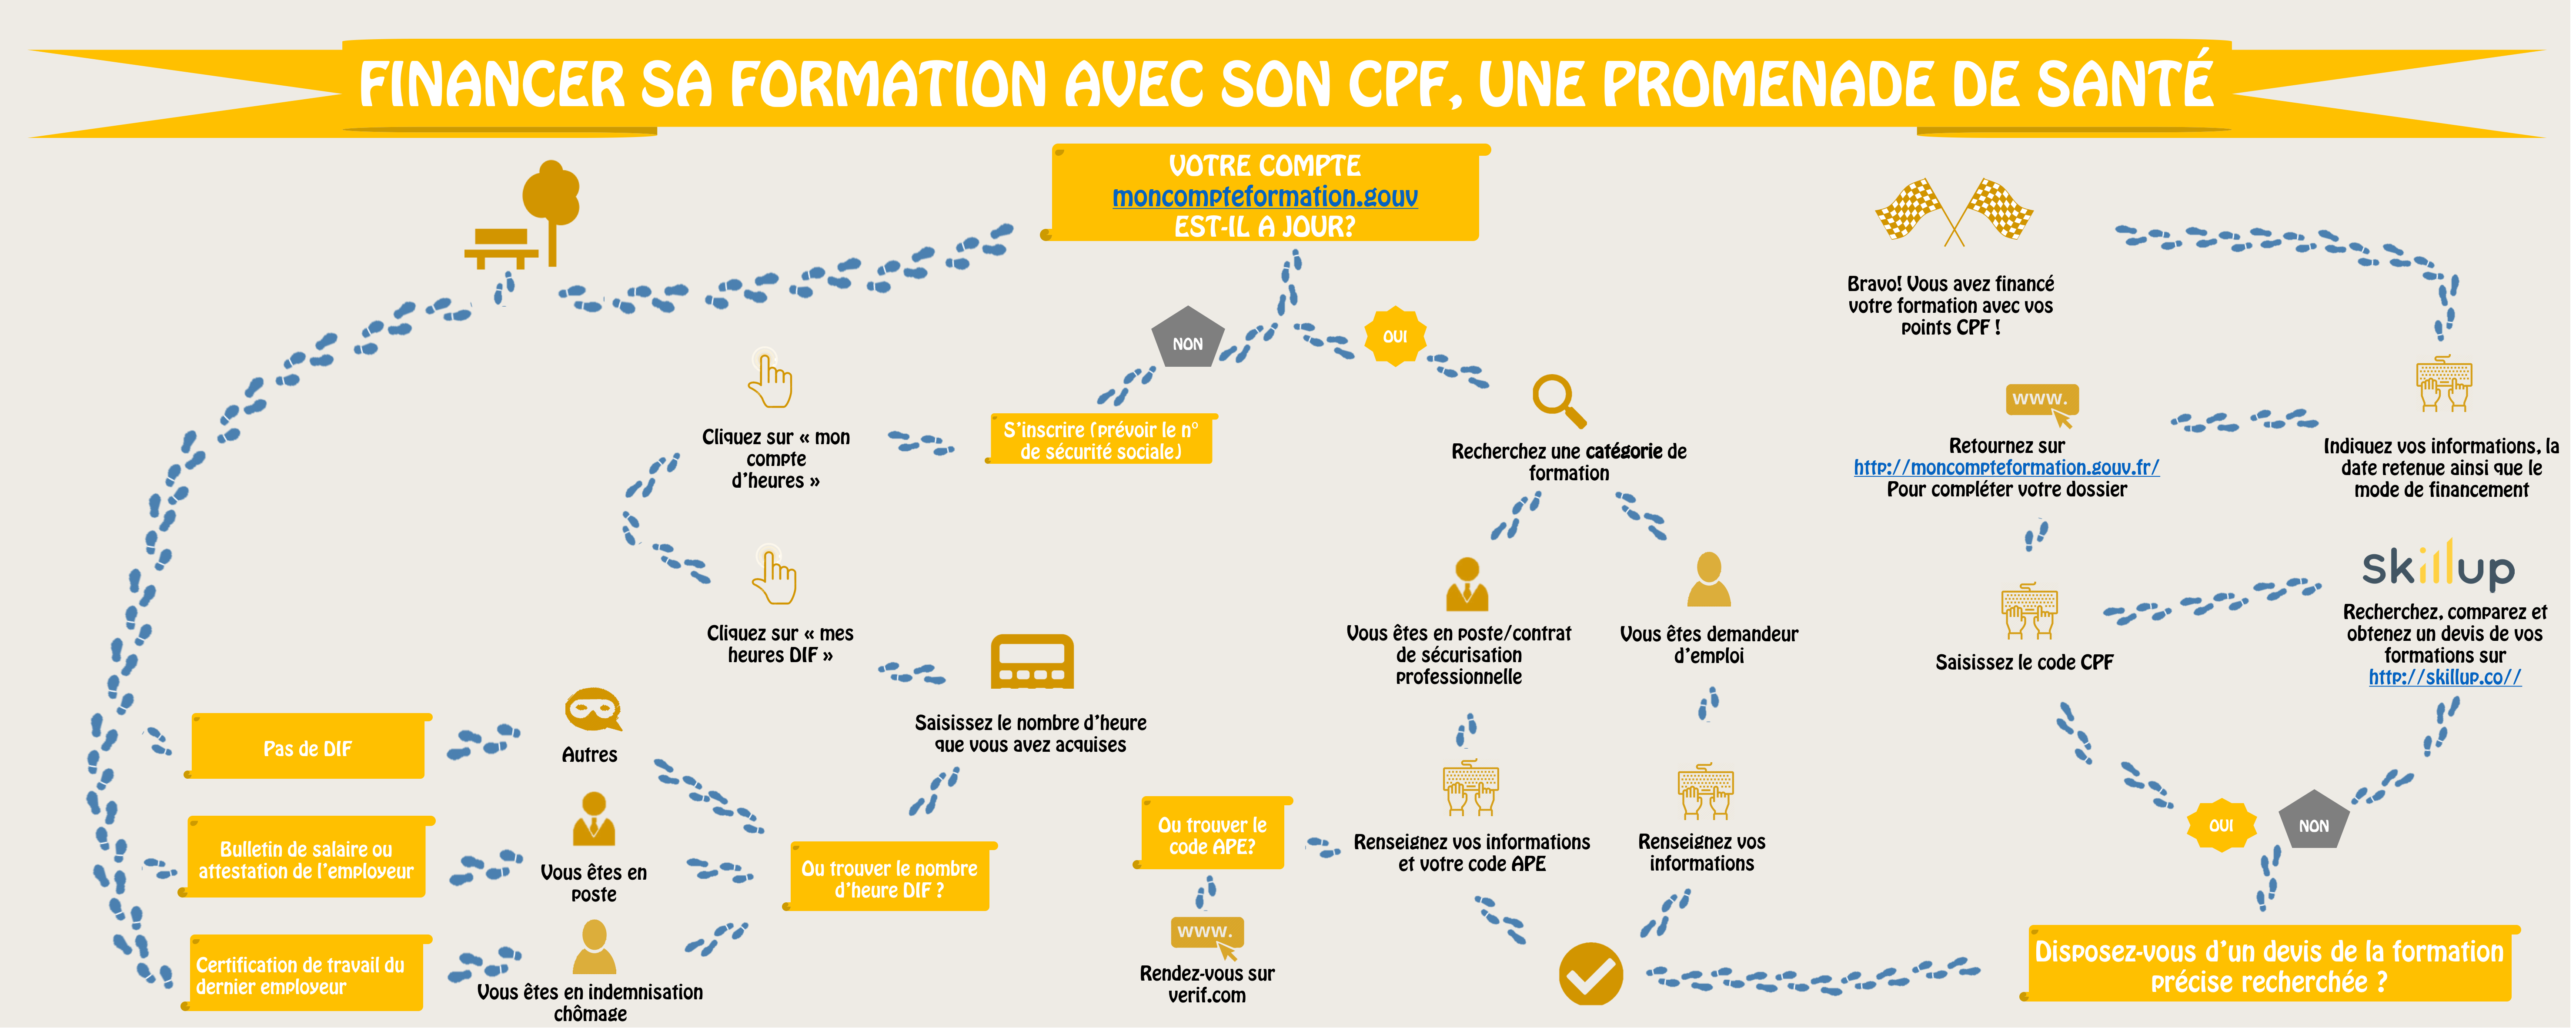 financer sa formation avec son cpf